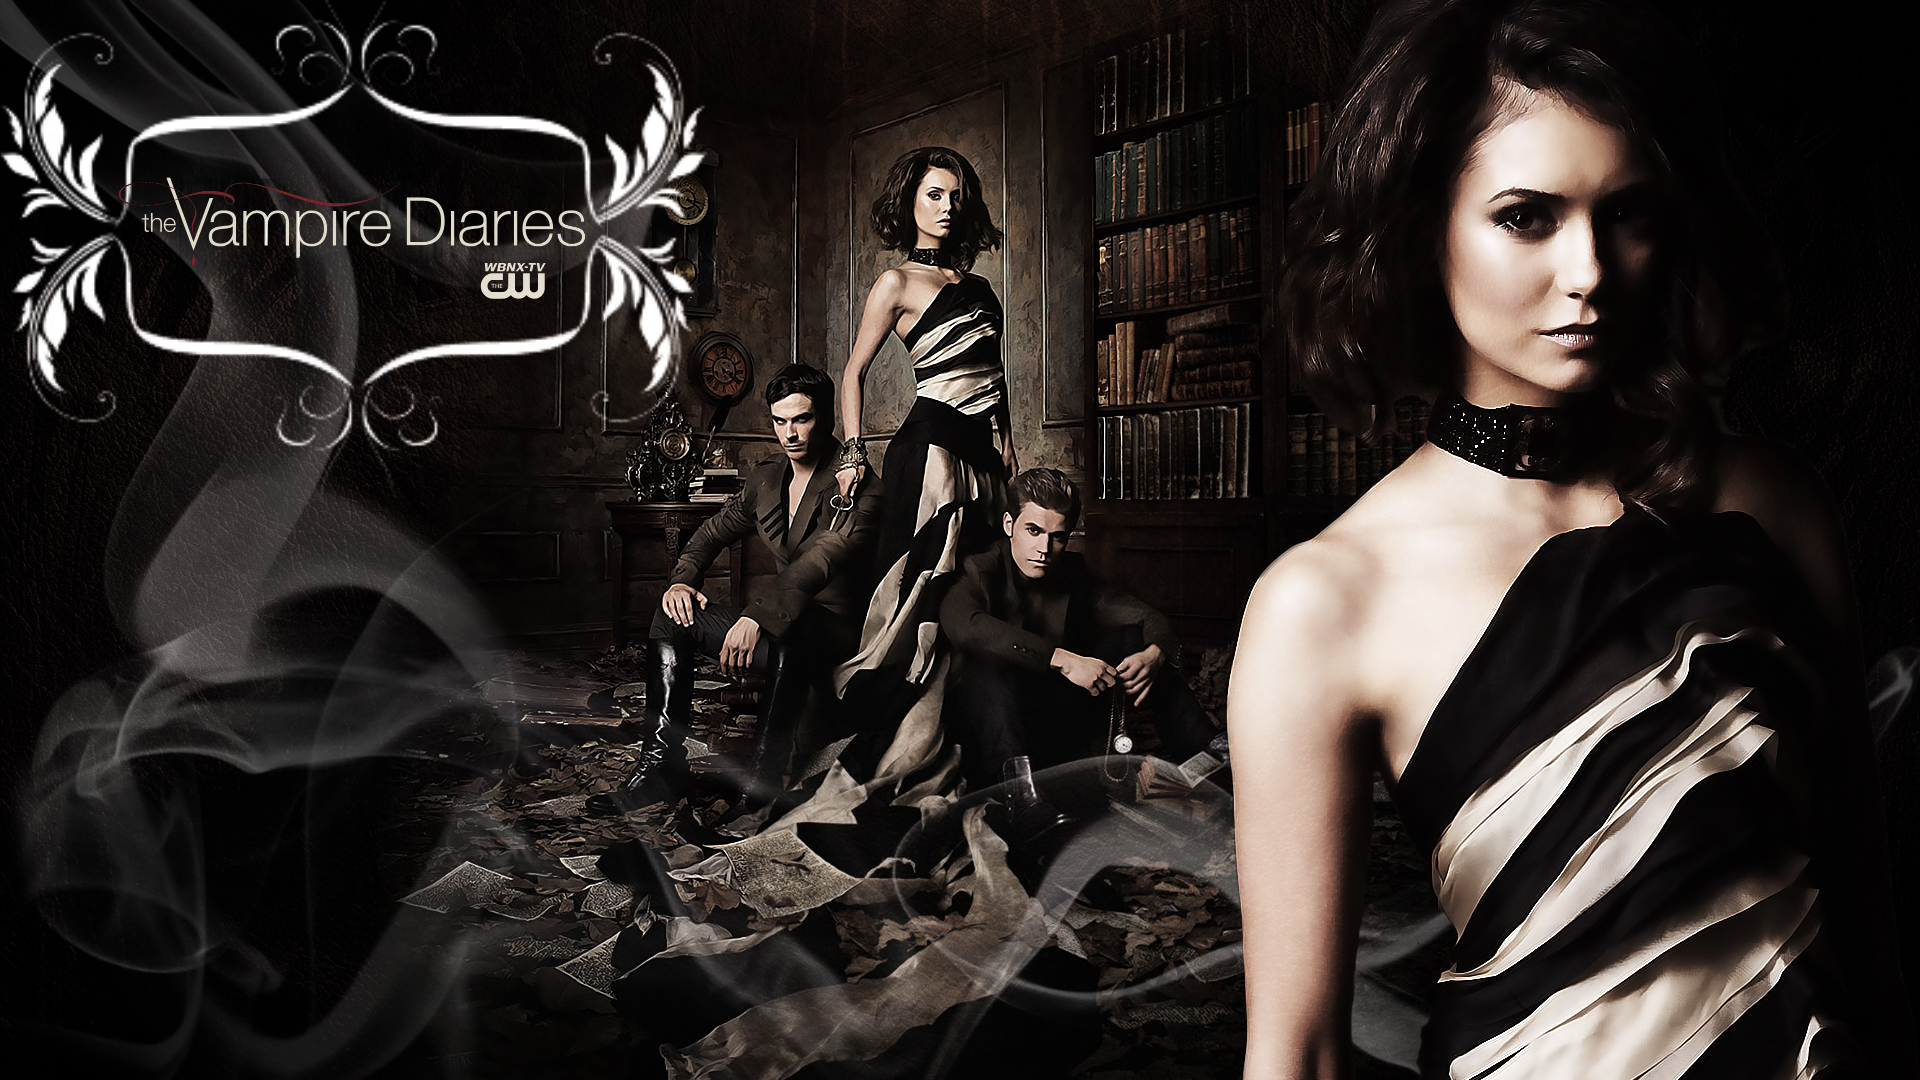 Wallpaper The Vampire Diaries Picture 1920x1080